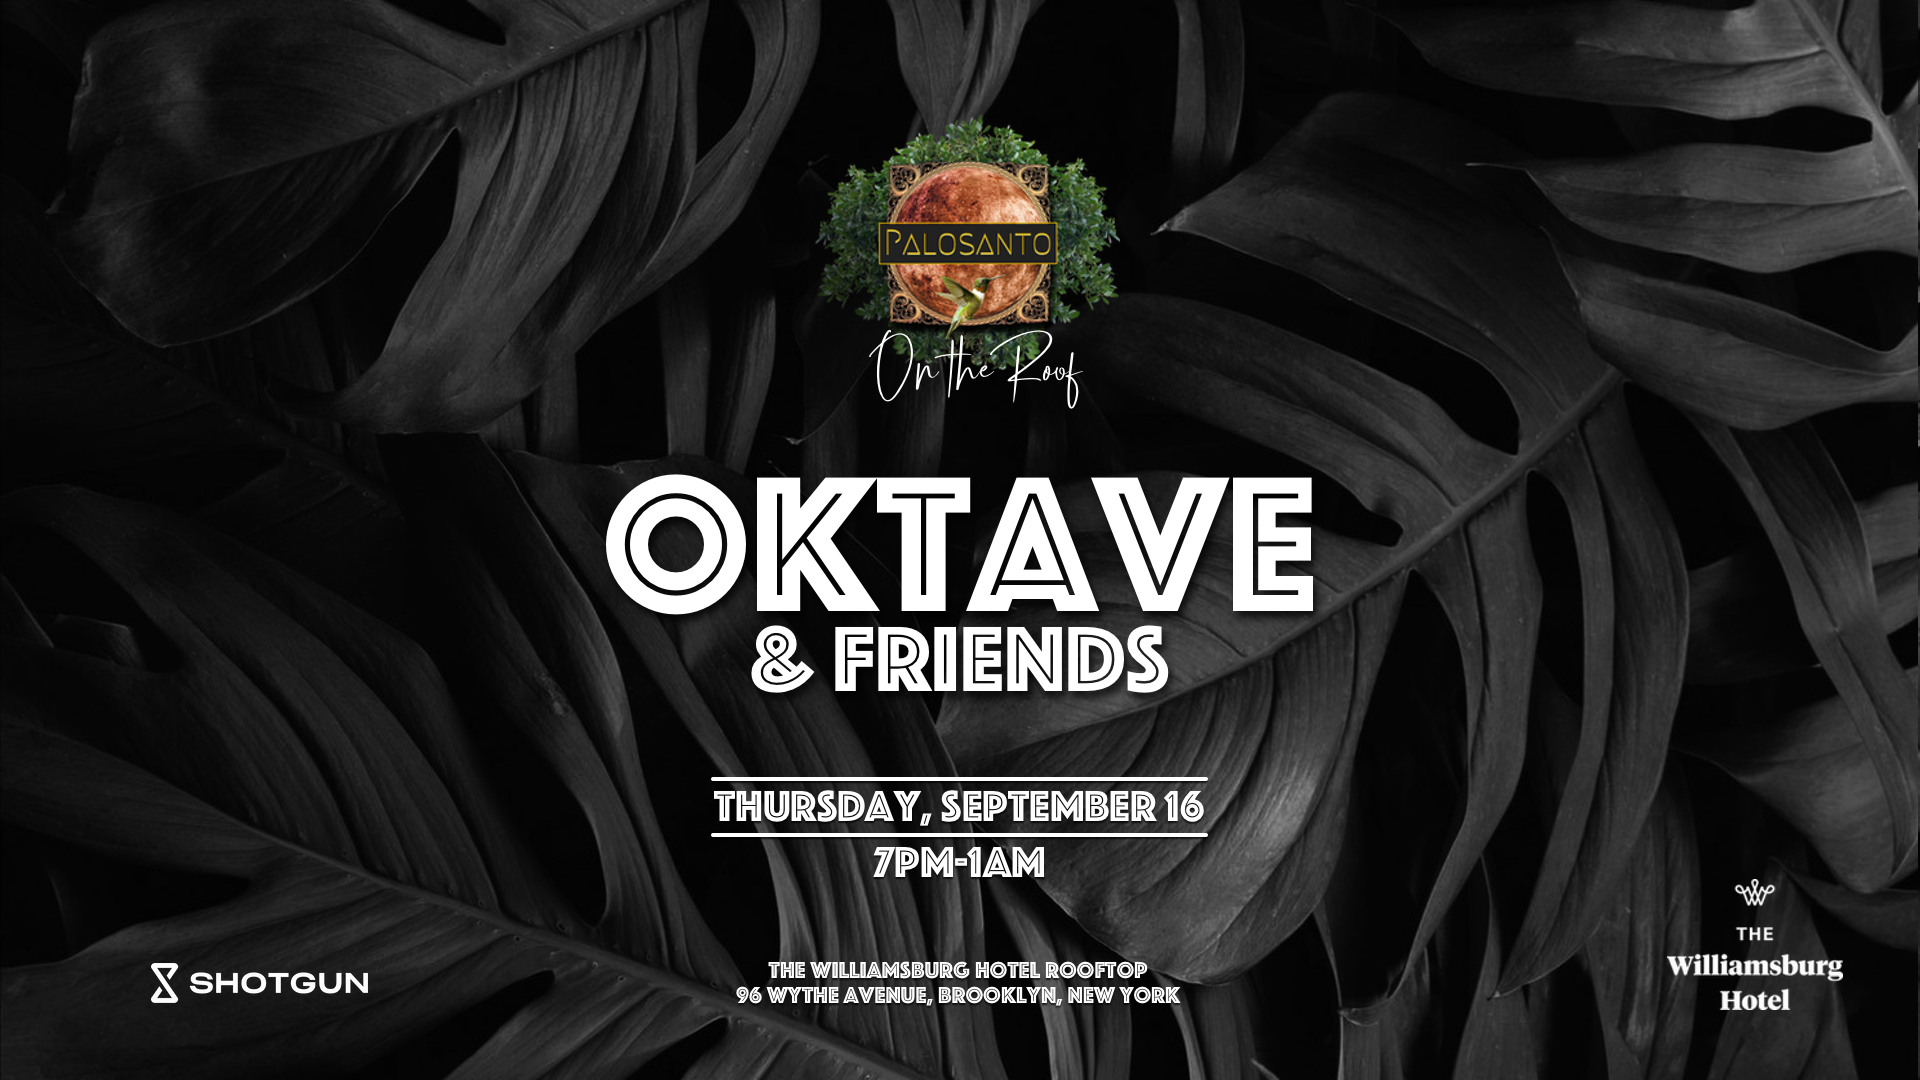 On The Roof: Oktave & Friends